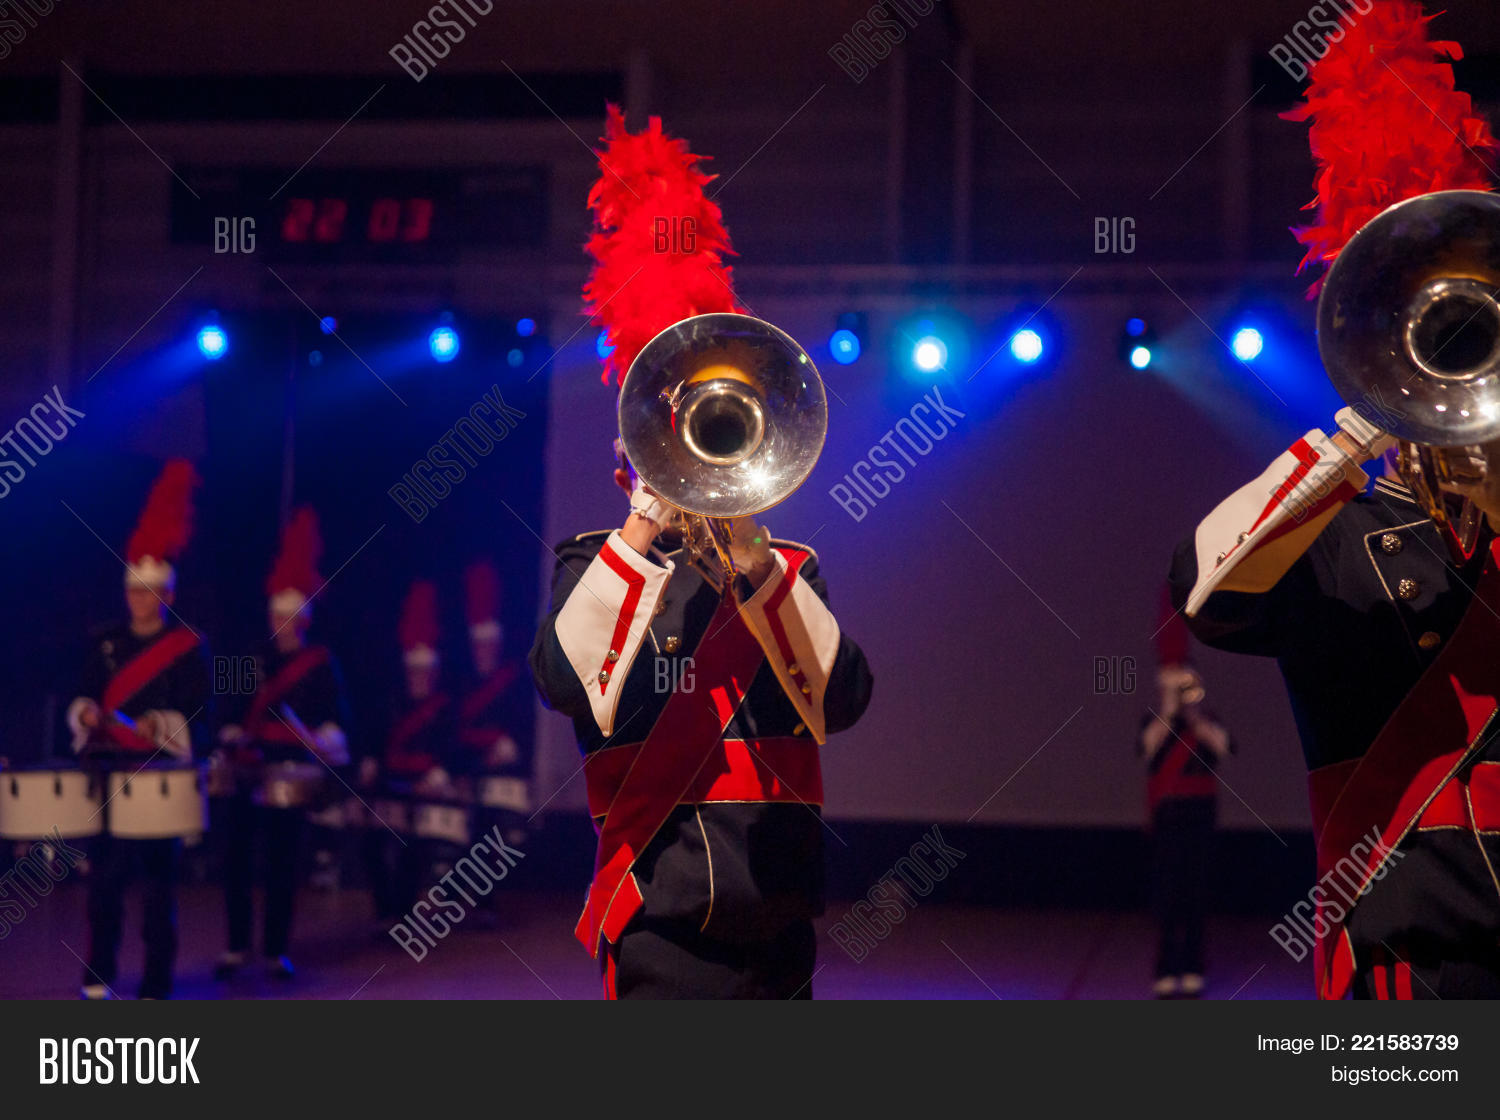 Details Music, Show Image & Photo (Free Trial)   Bigstock